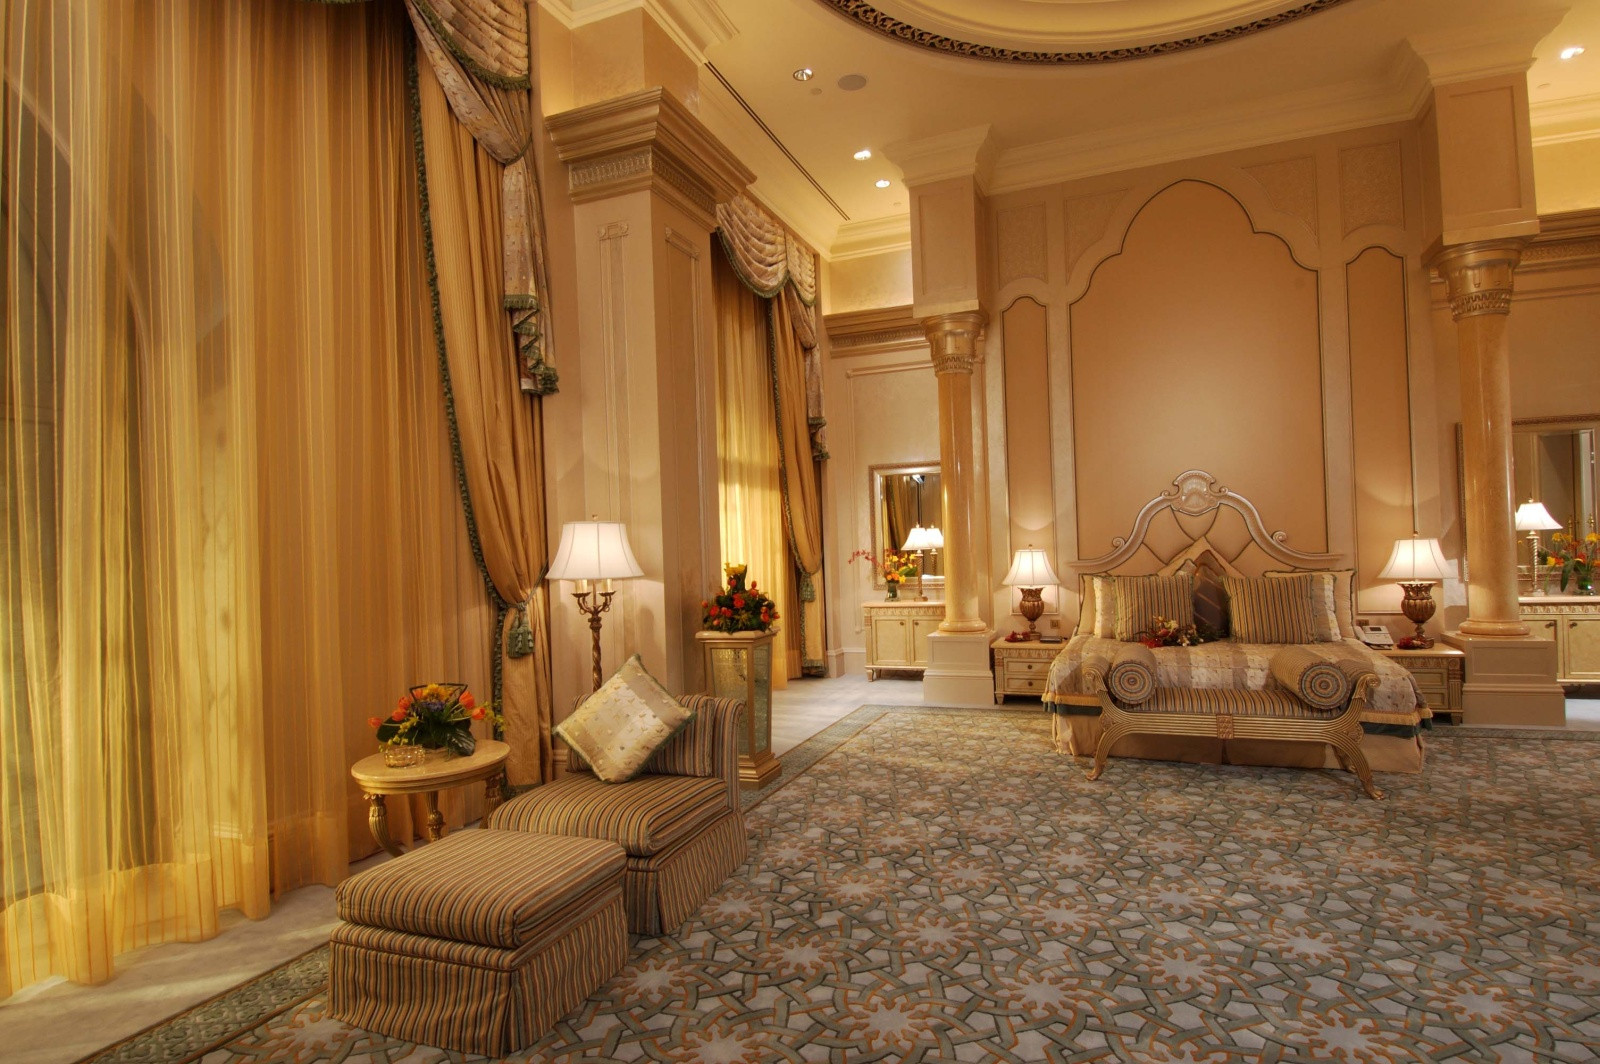 Hotel Suite In The Emirates Palace In Abu Dhabi United